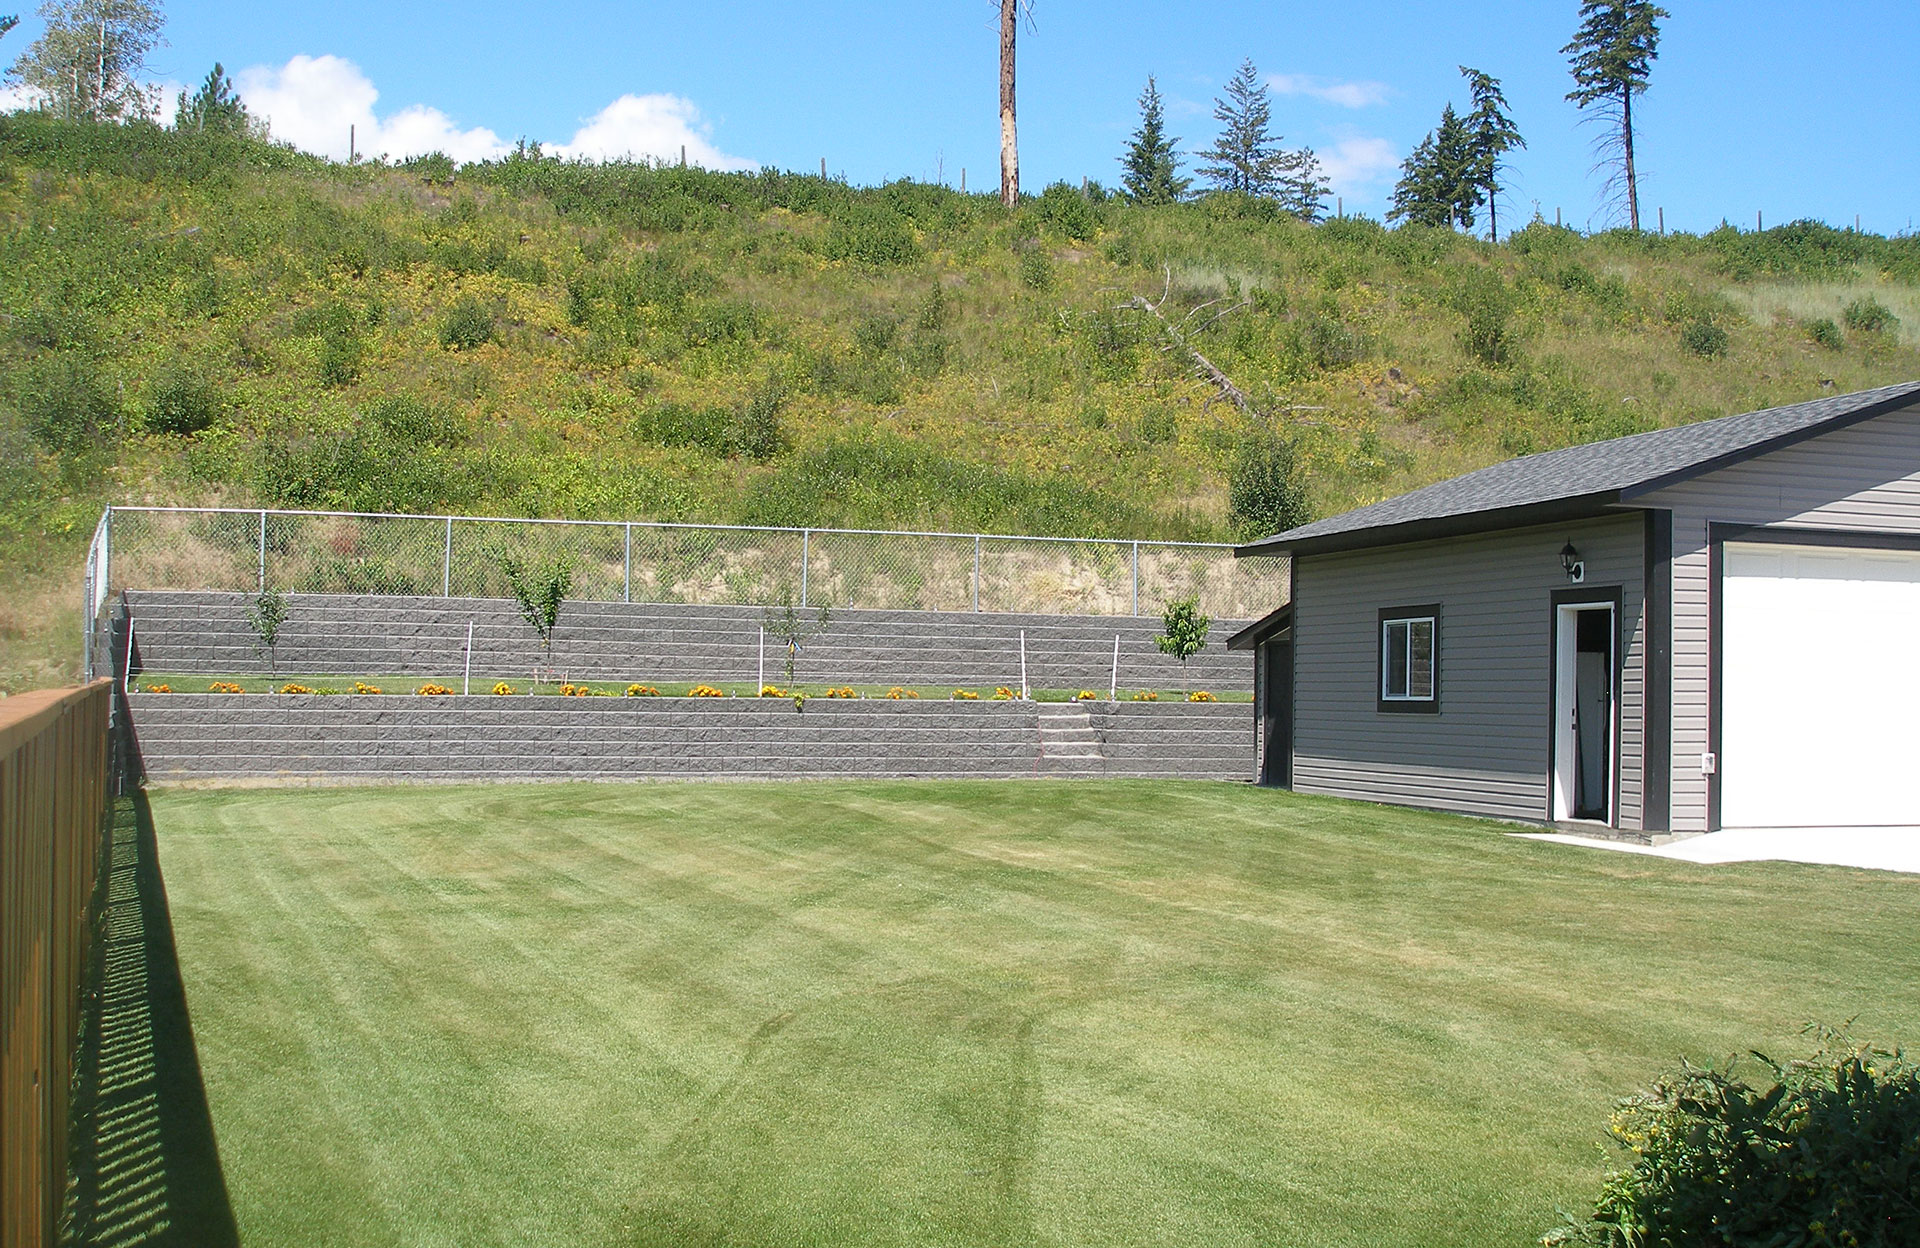 Retaining wall installation project complete